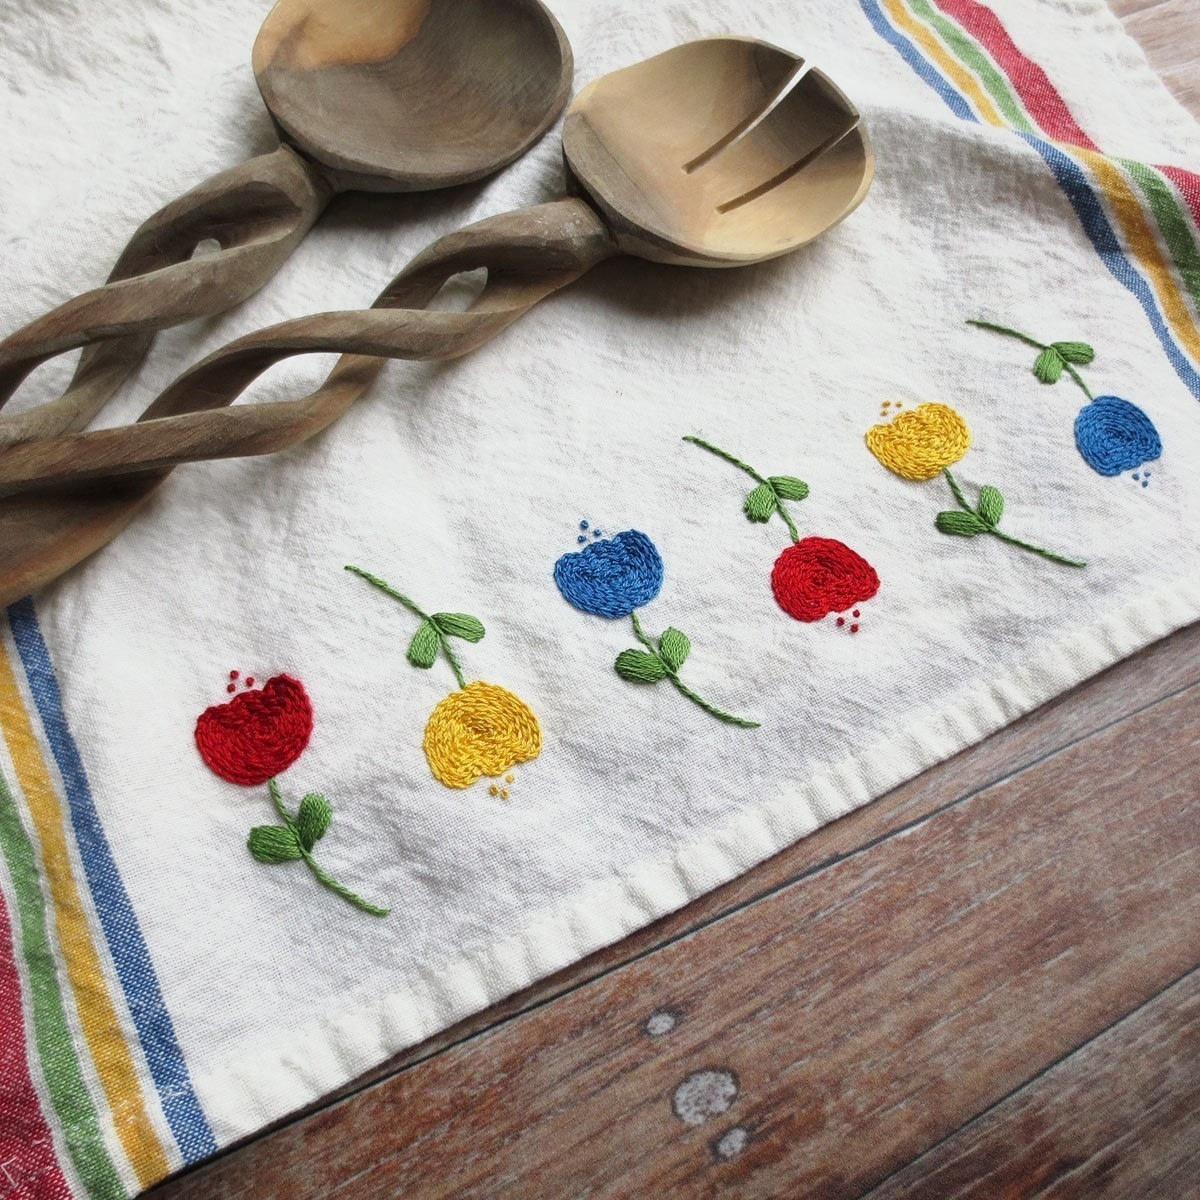 How To Make An Embroidery Pattern Embroidered Tulip Tea Towel How To Make A Tea Towel Needlework